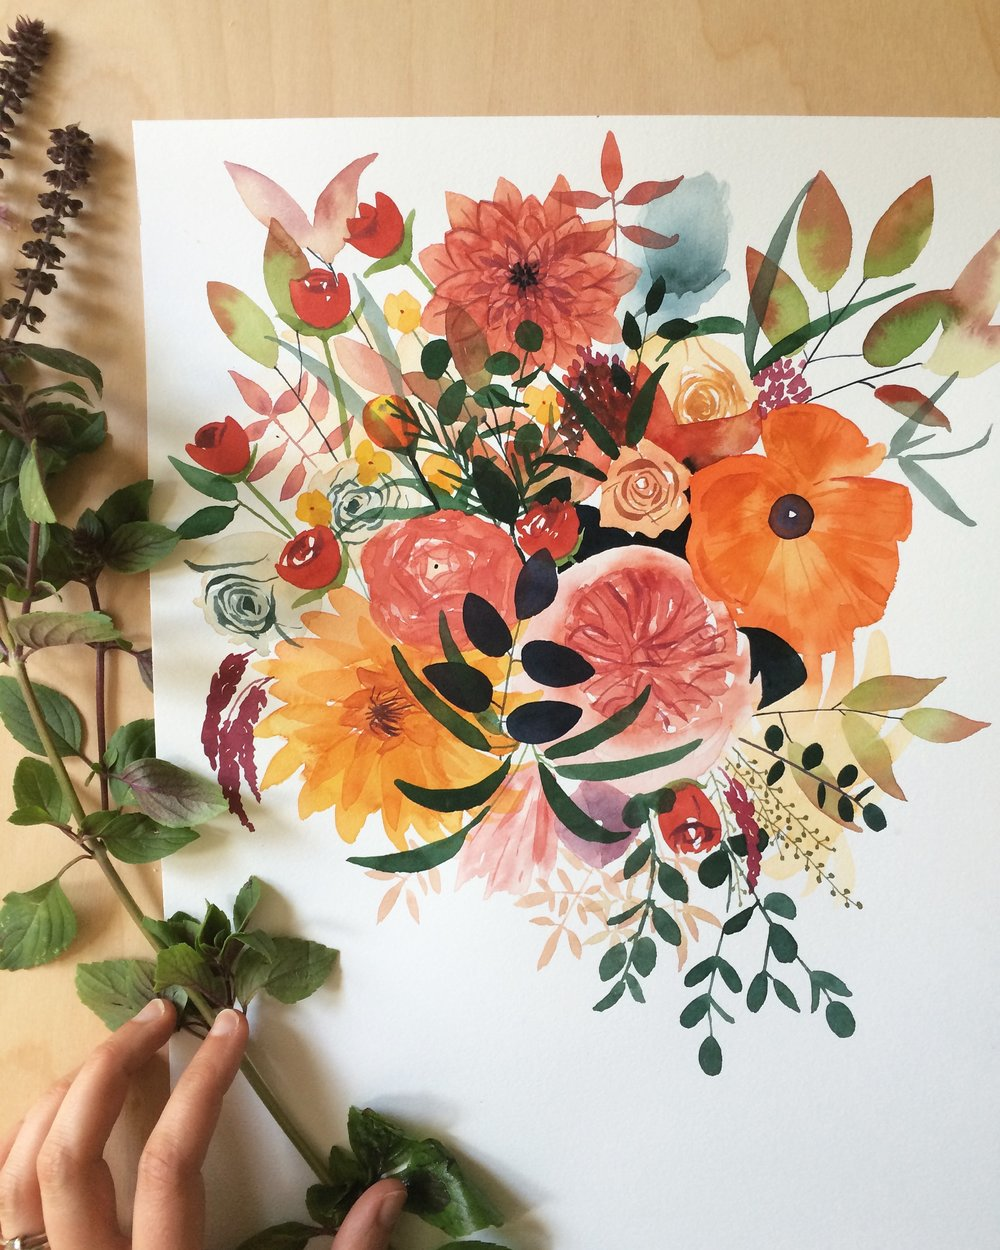 I kept painting flowers!